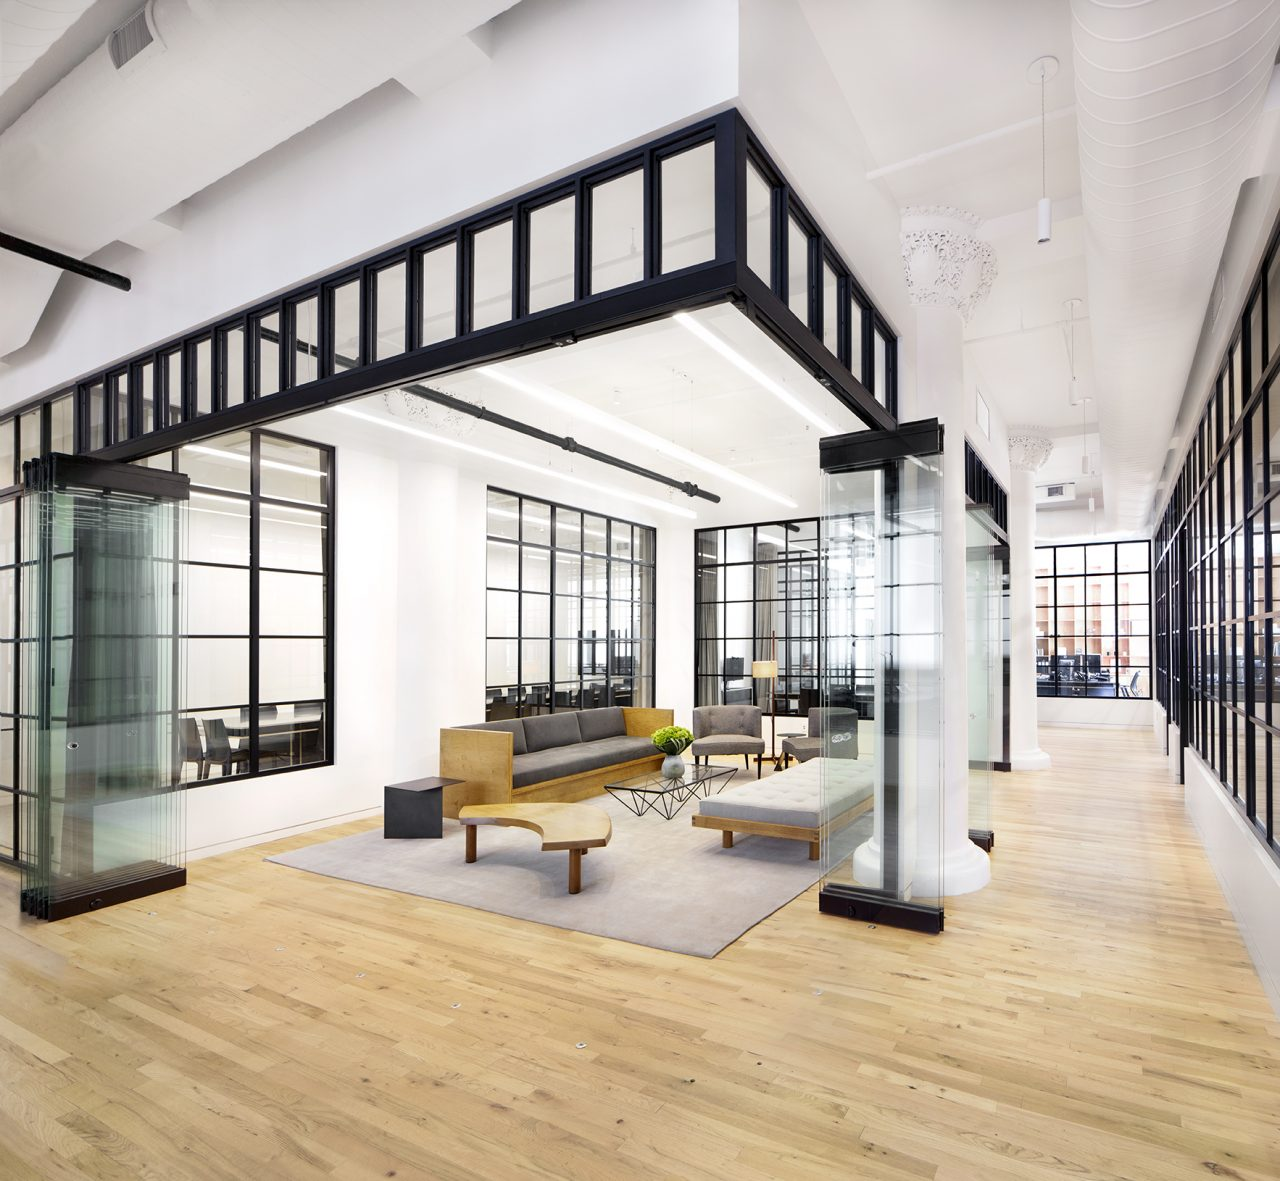 Interior view of Bleecker Street Office, New York (tacklebox architecture).